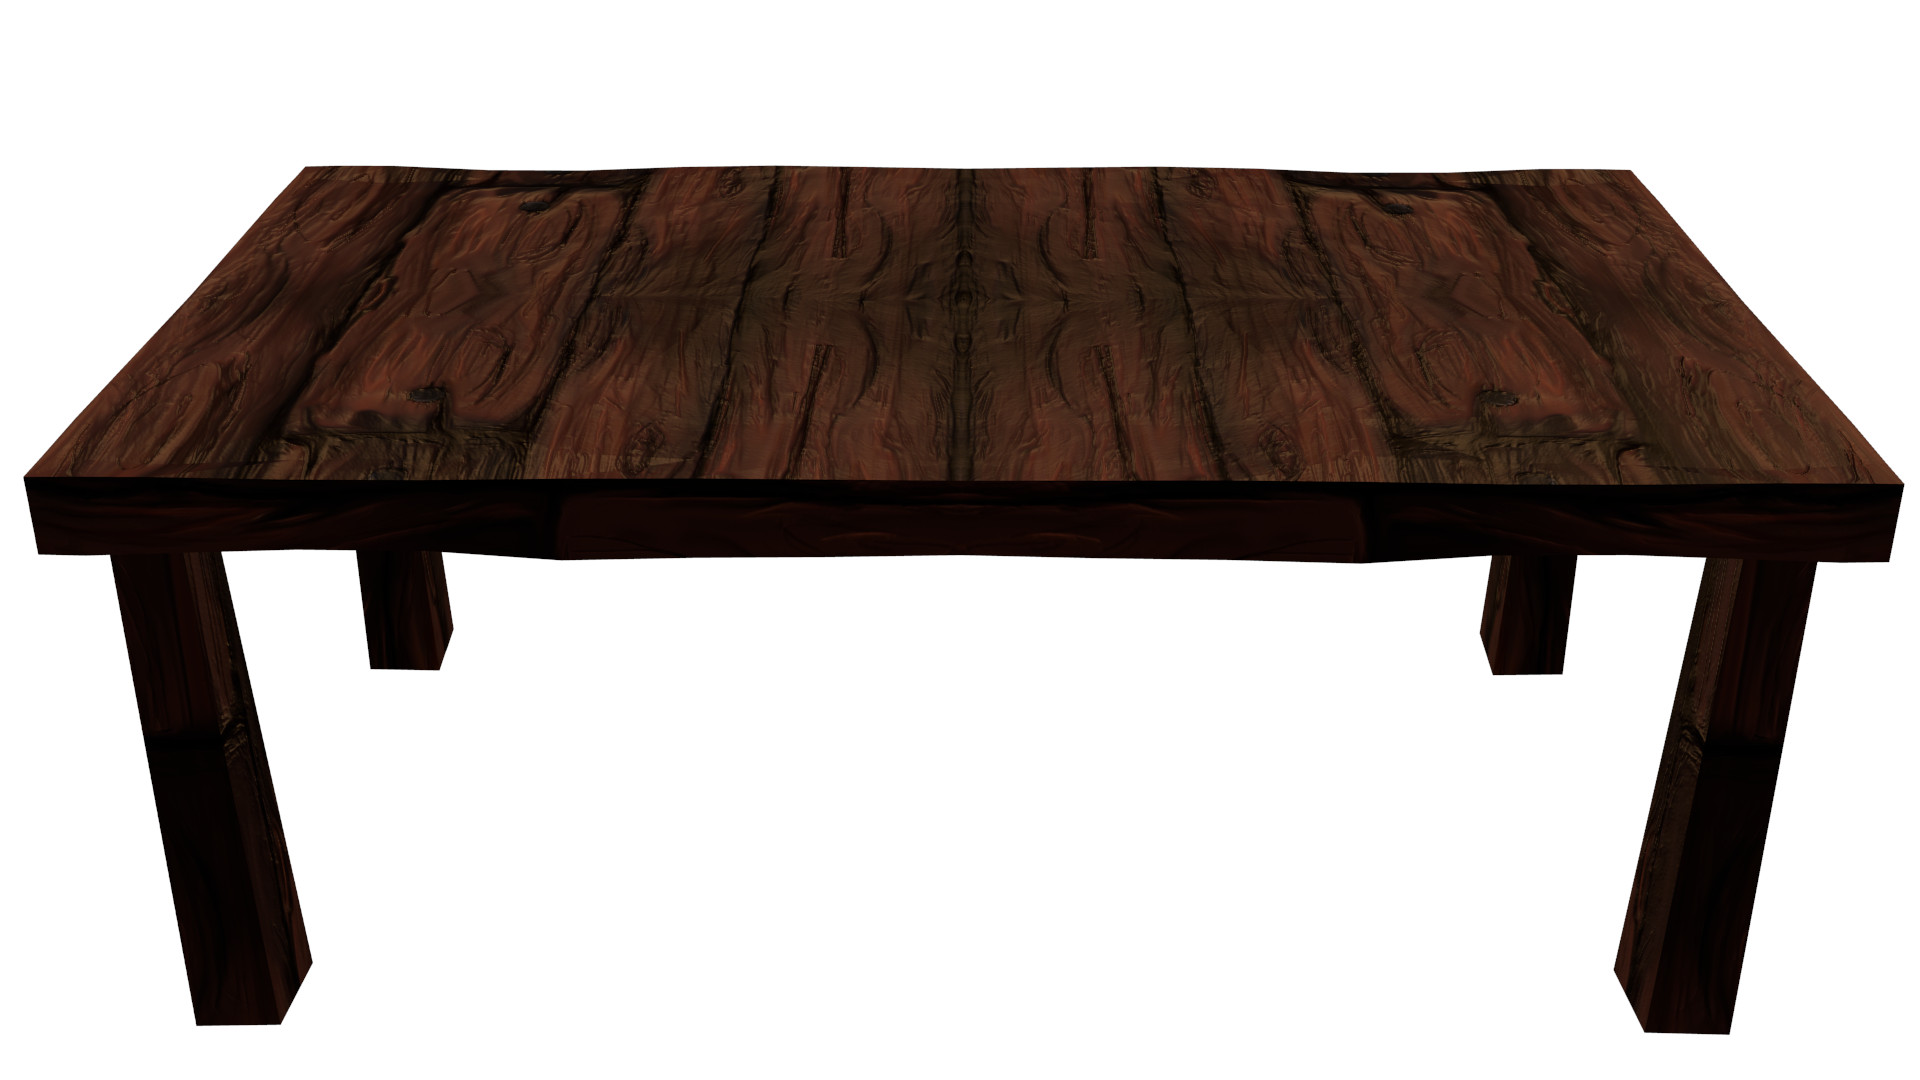 Wood clipart wood table Model Cartoon  on Download